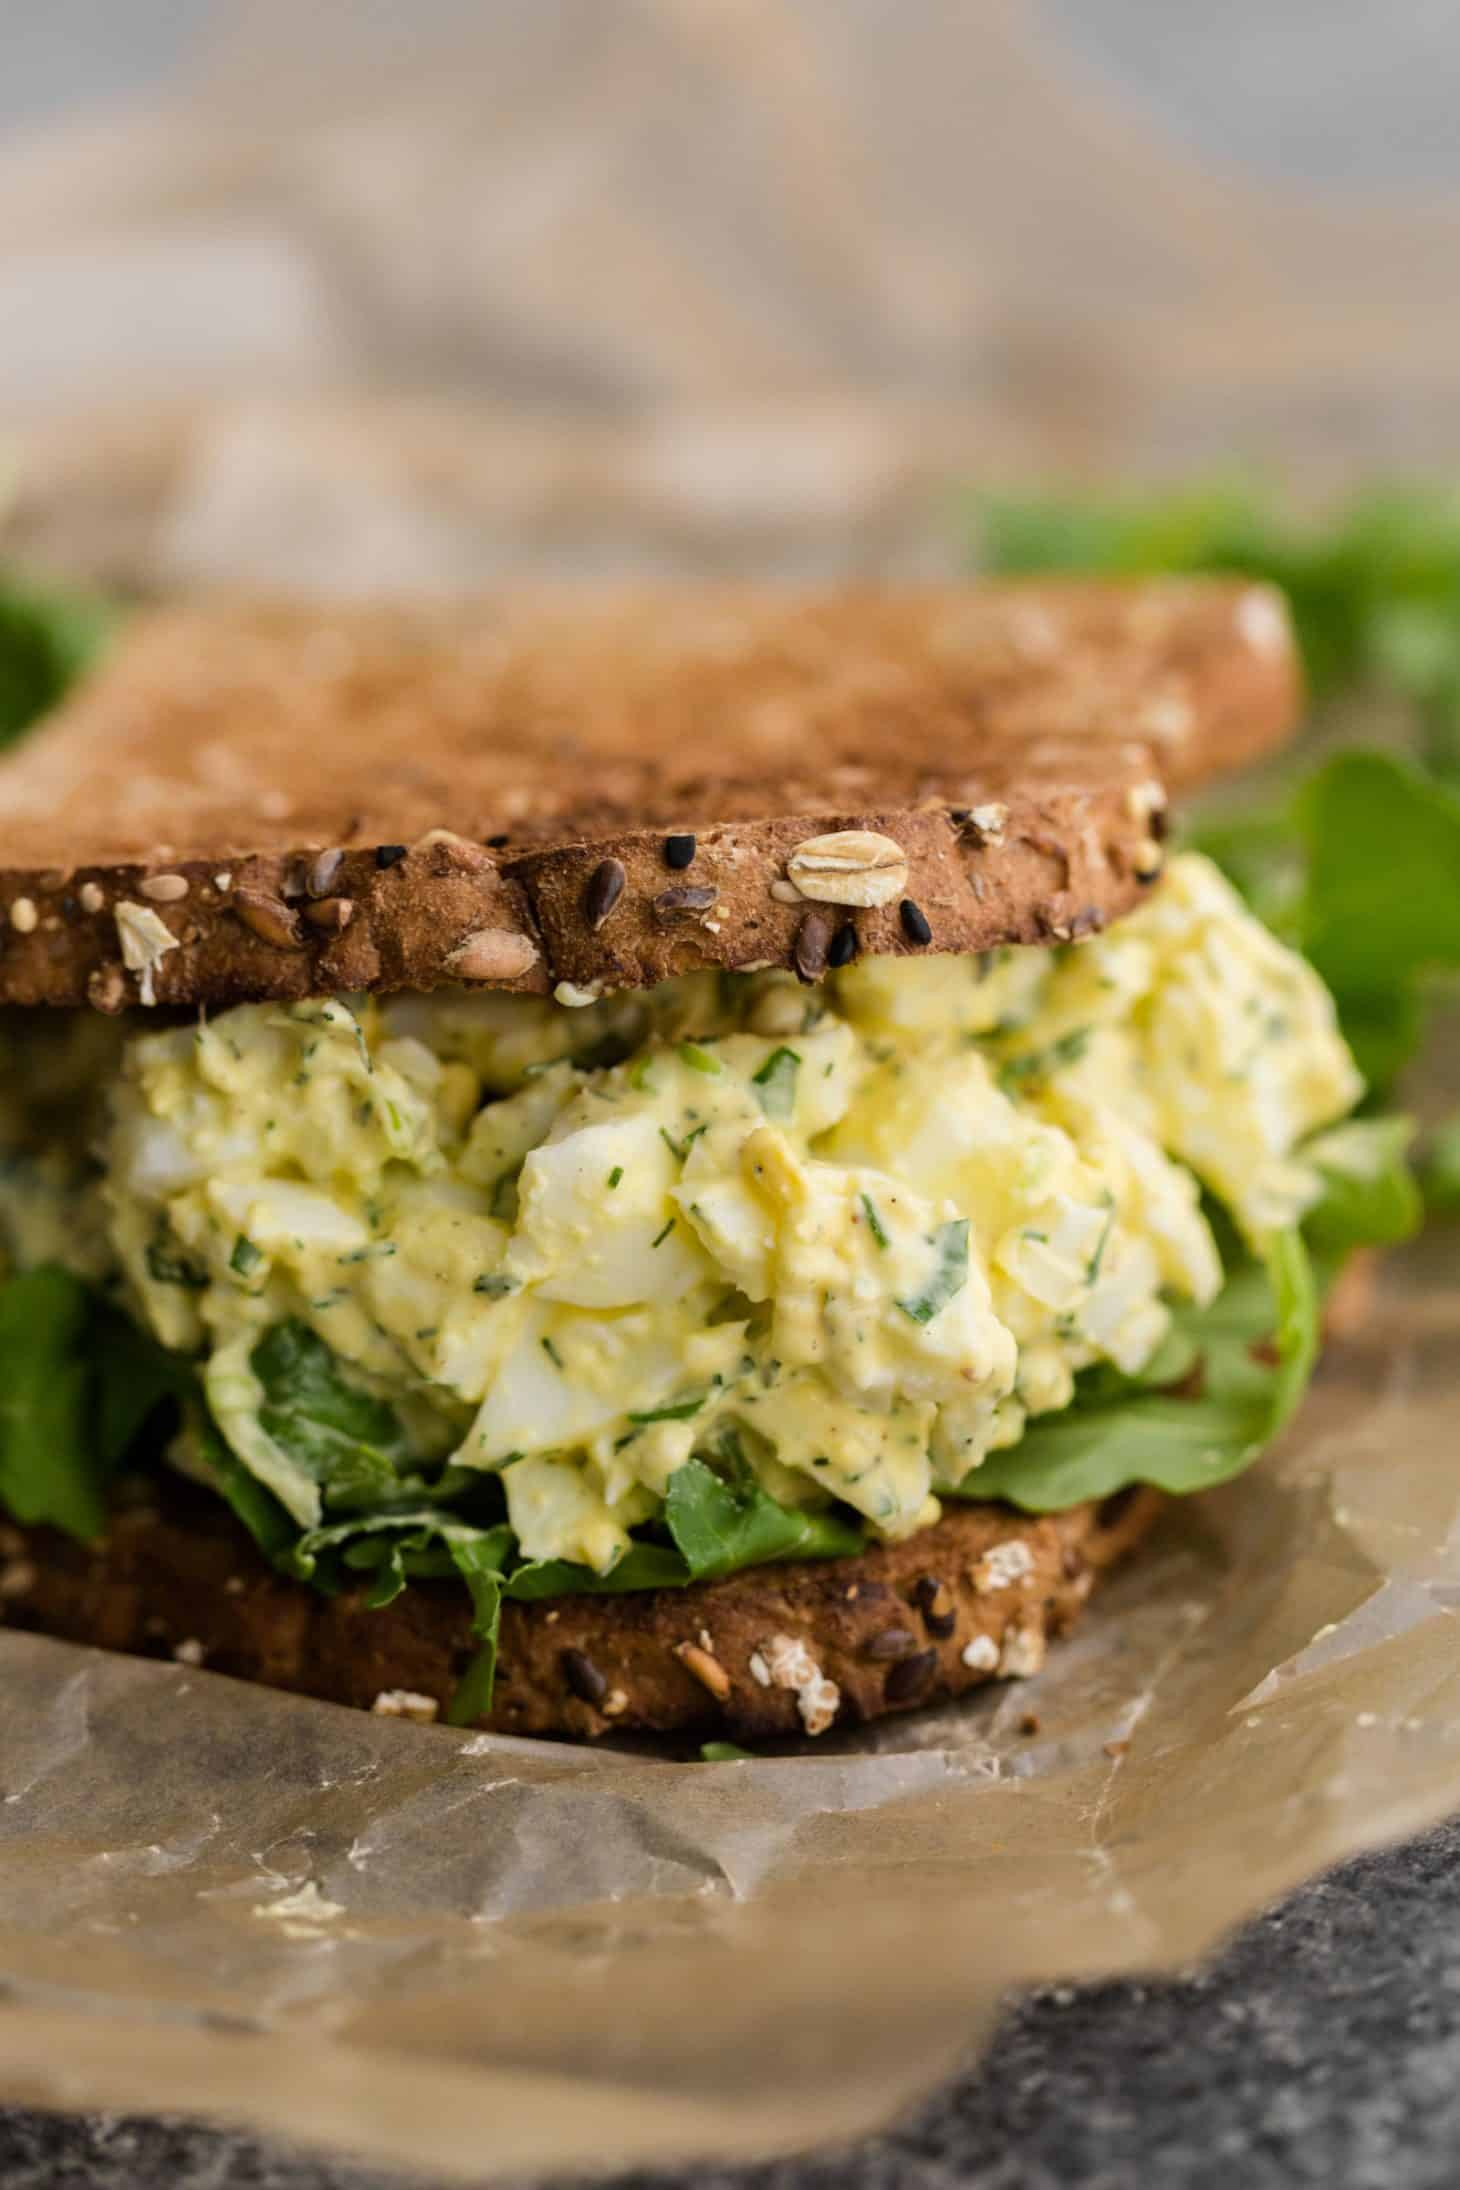 Egg Salad Sandwich with Herbs and Scallions